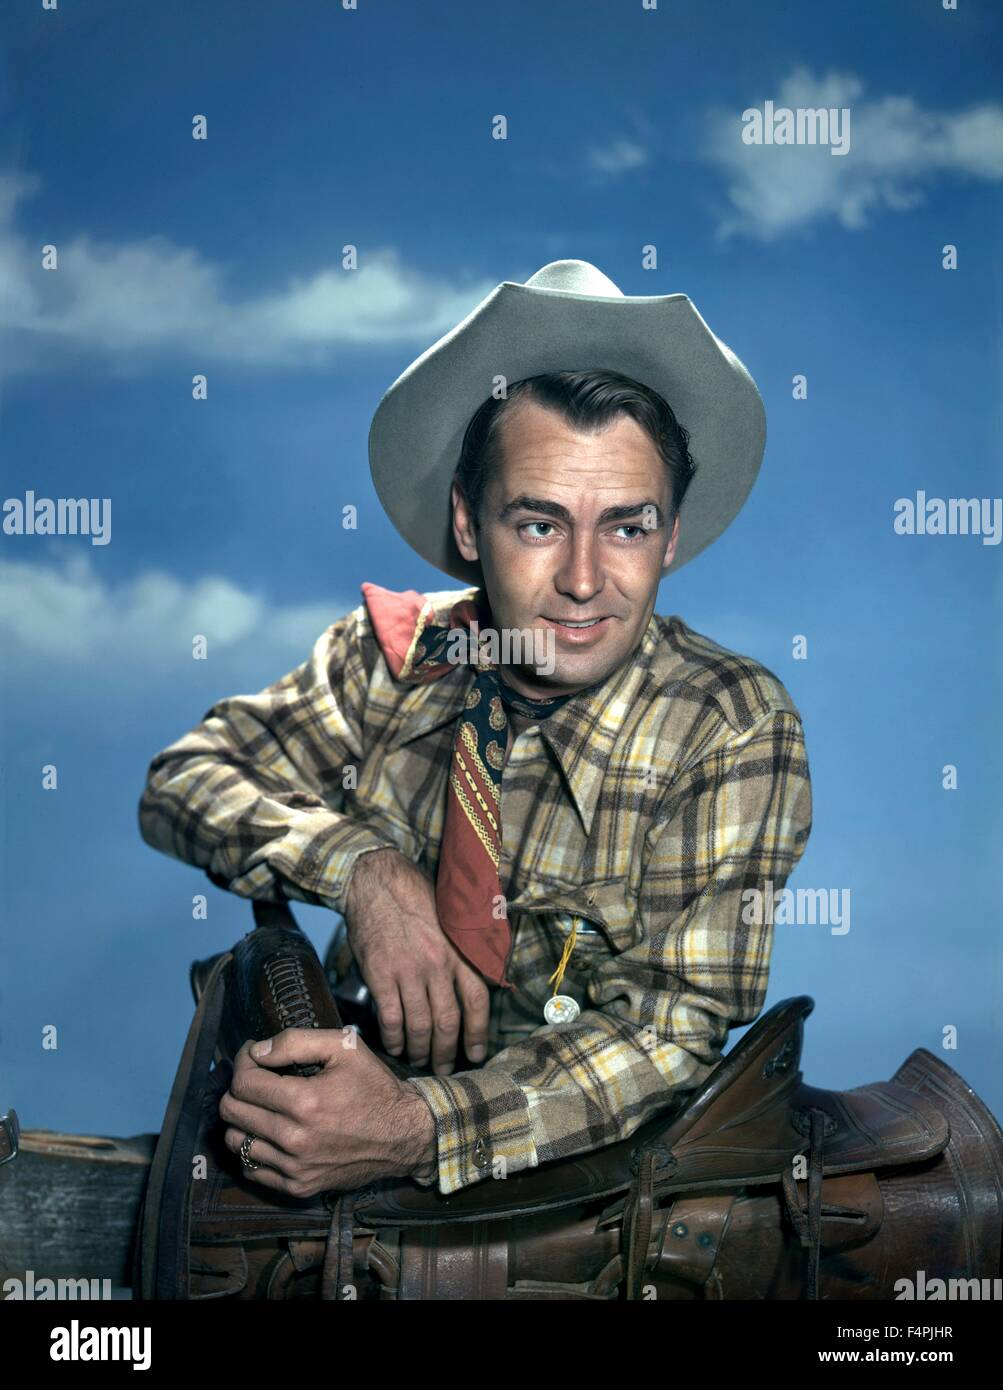 Alan Ladd / Branded / 1951 directed by Rudolph Mate [Paramount Pictures] - Stock Image